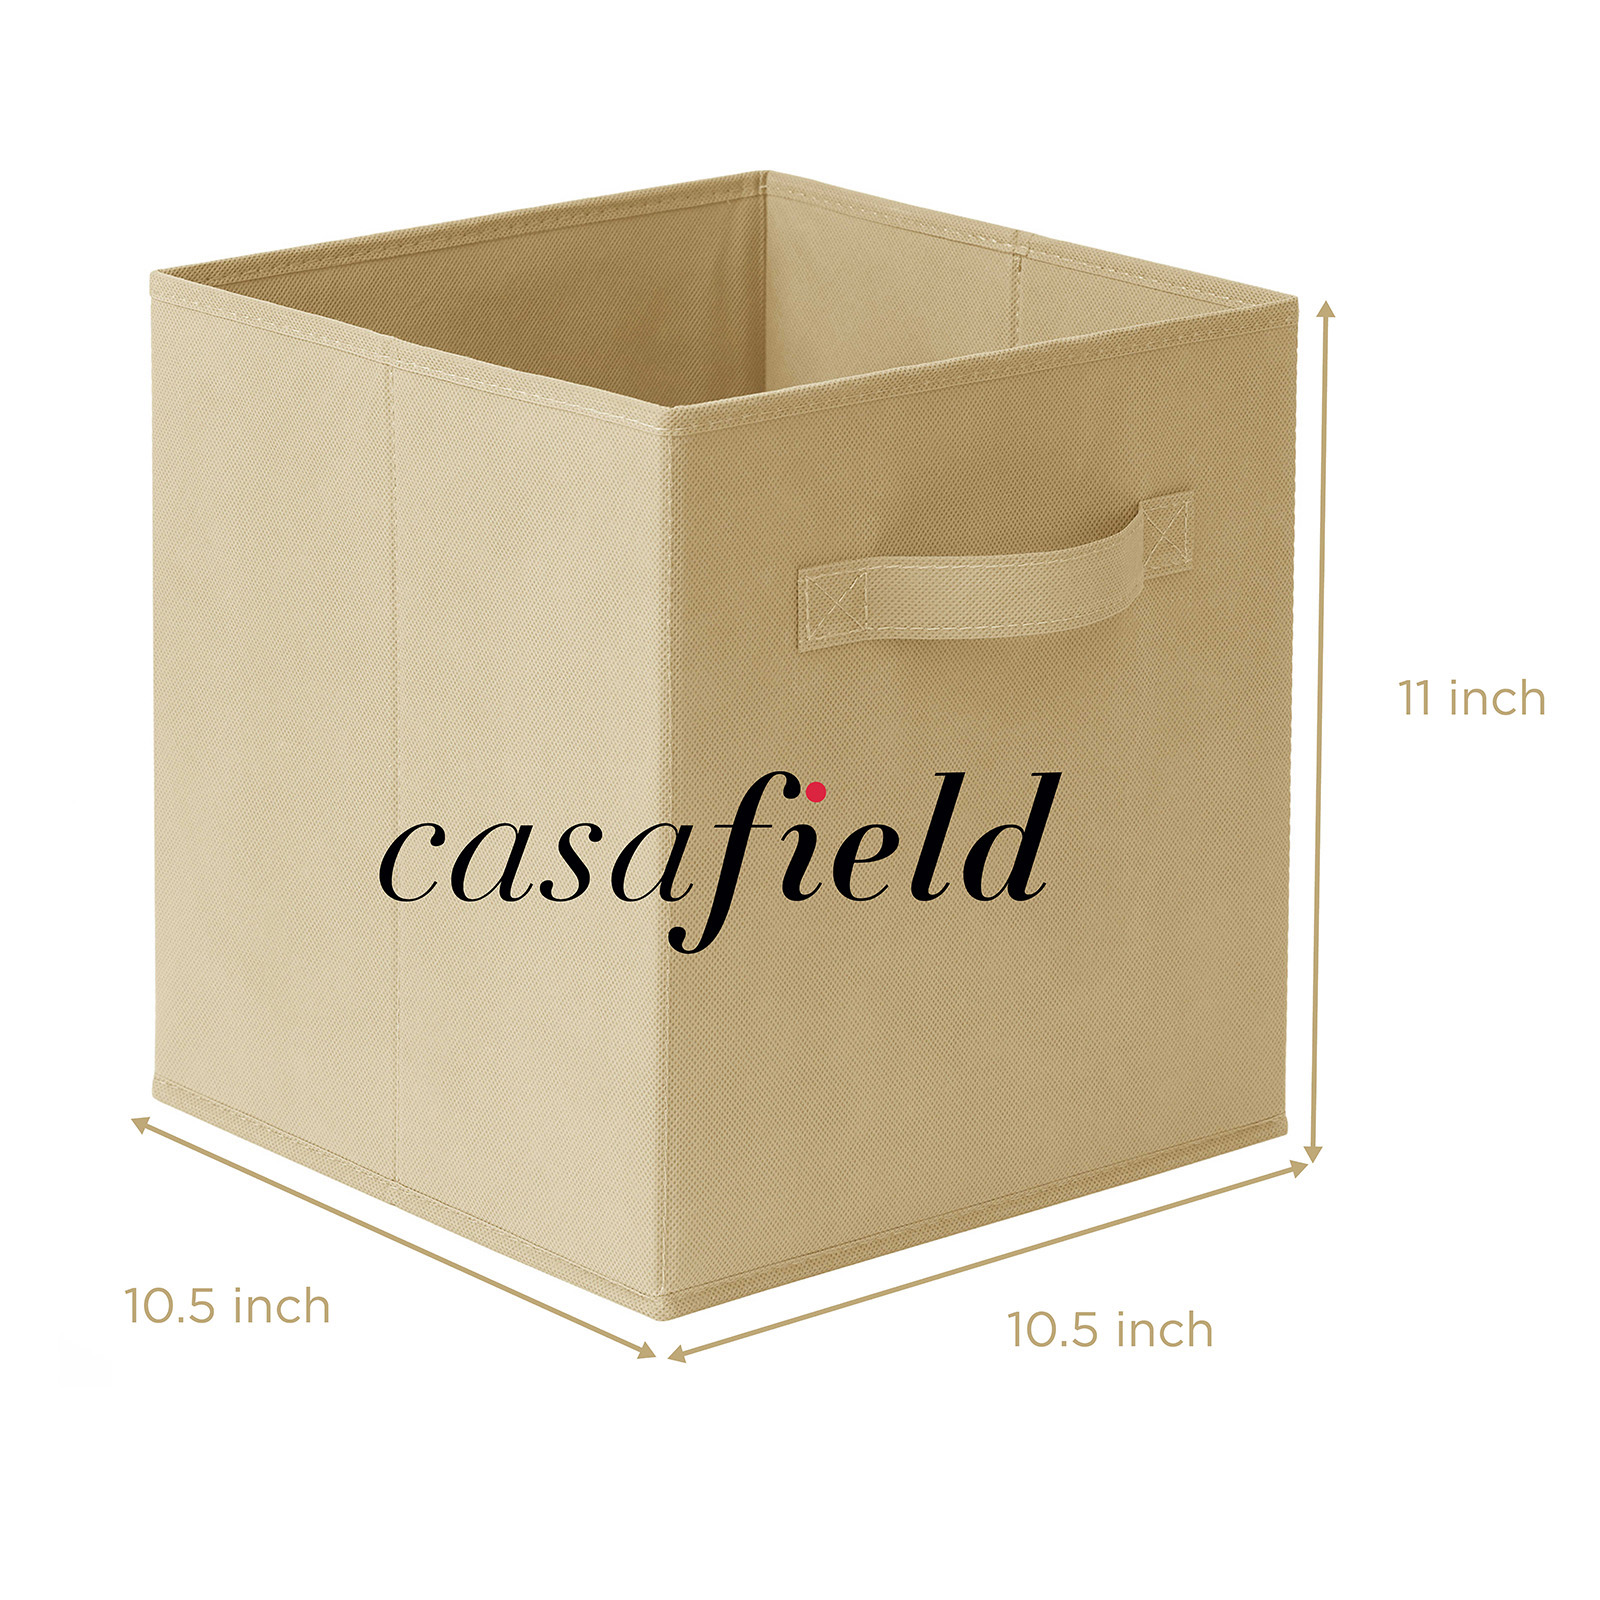 6-Collapsible-Foldable-Cloth-Fabric-Cubby-Cube-Storage-Bins-Baskets-for-Shelves thumbnail 77